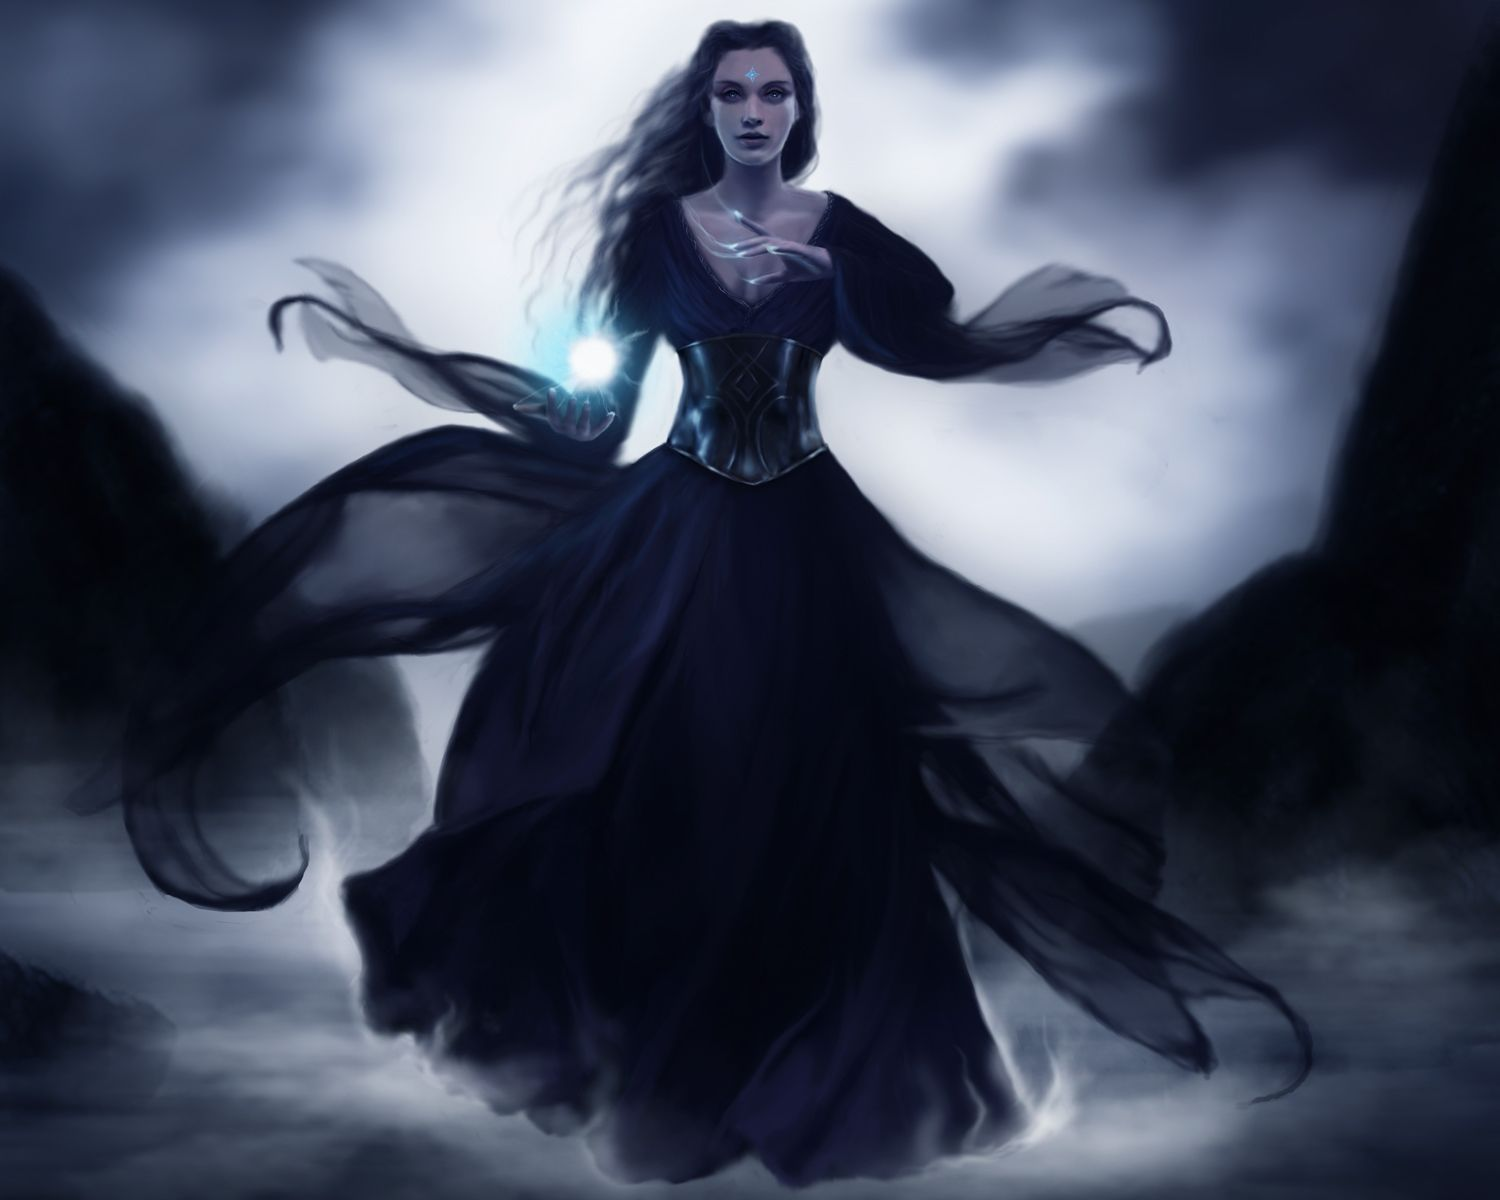 Witch Fantasy Girl Art dark horror gothic fantasy art